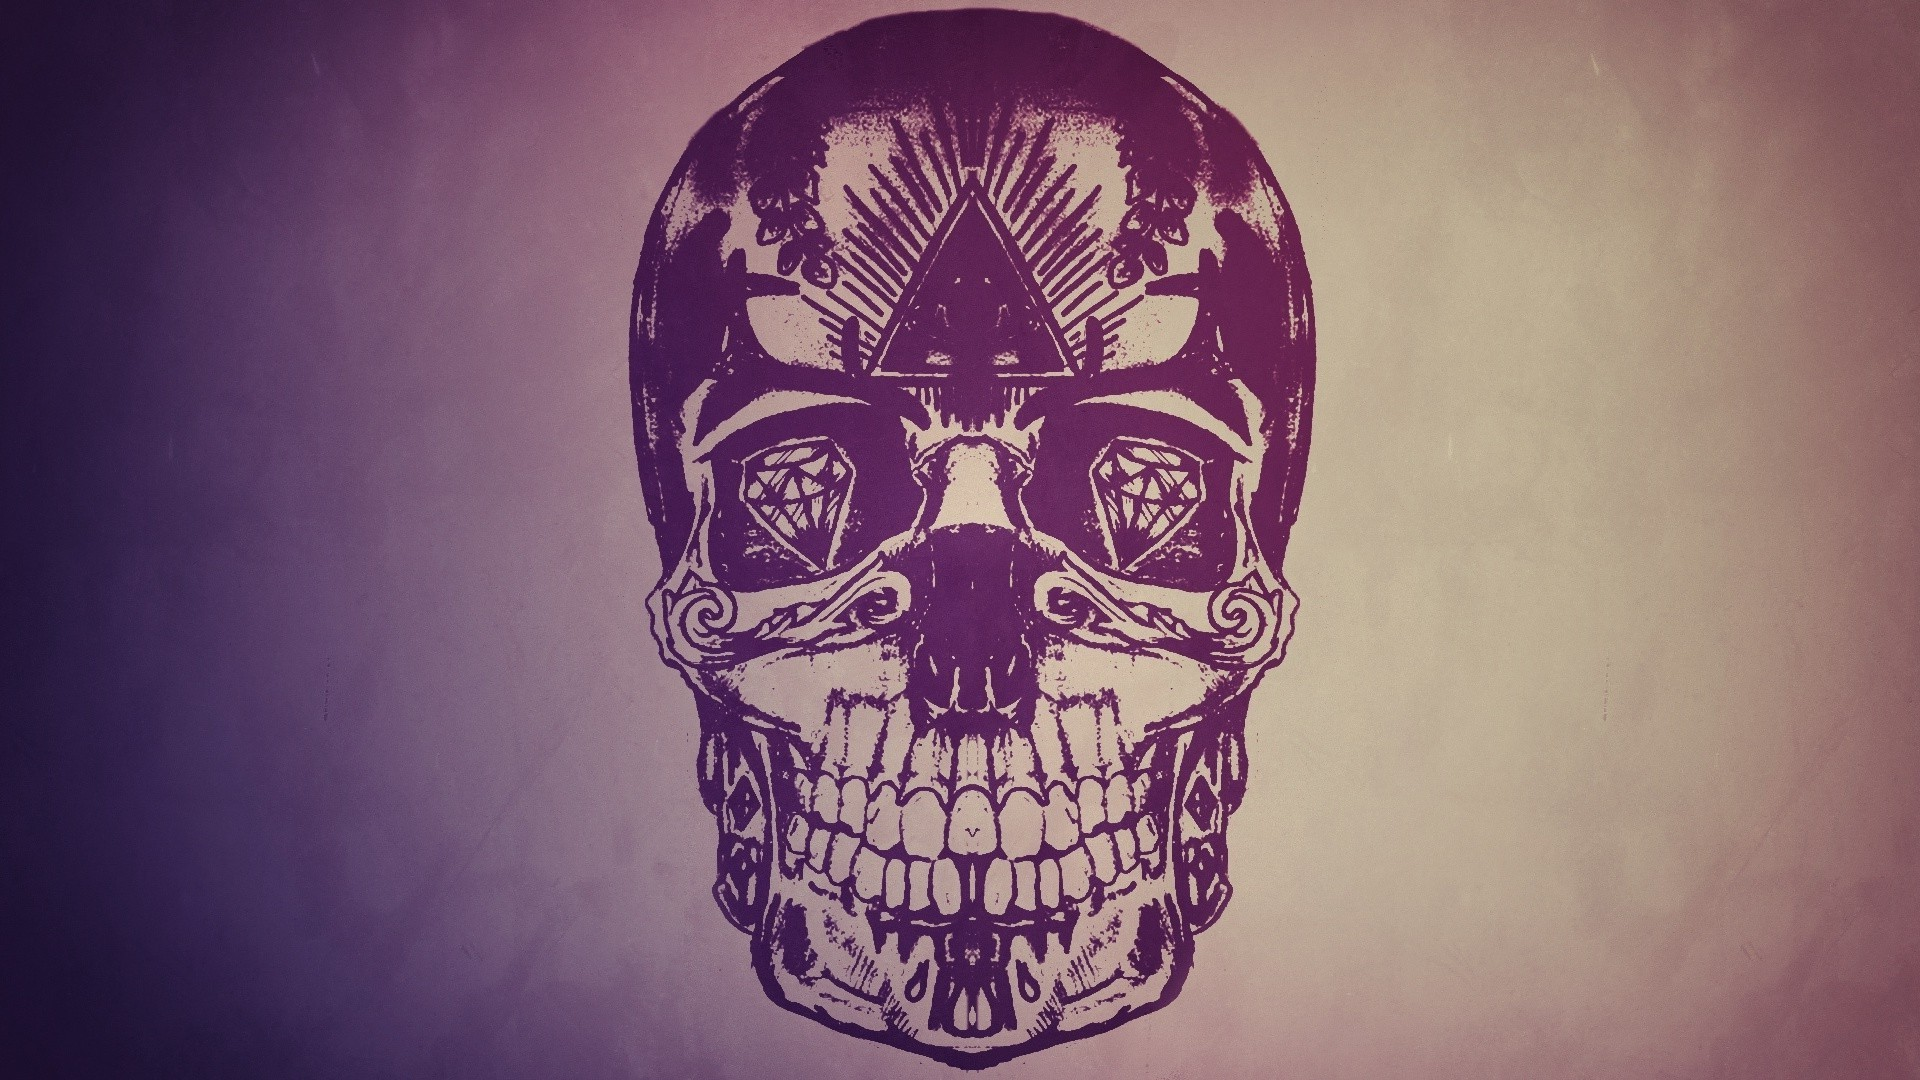 skull wallpaper wallpapers hd - photo #35